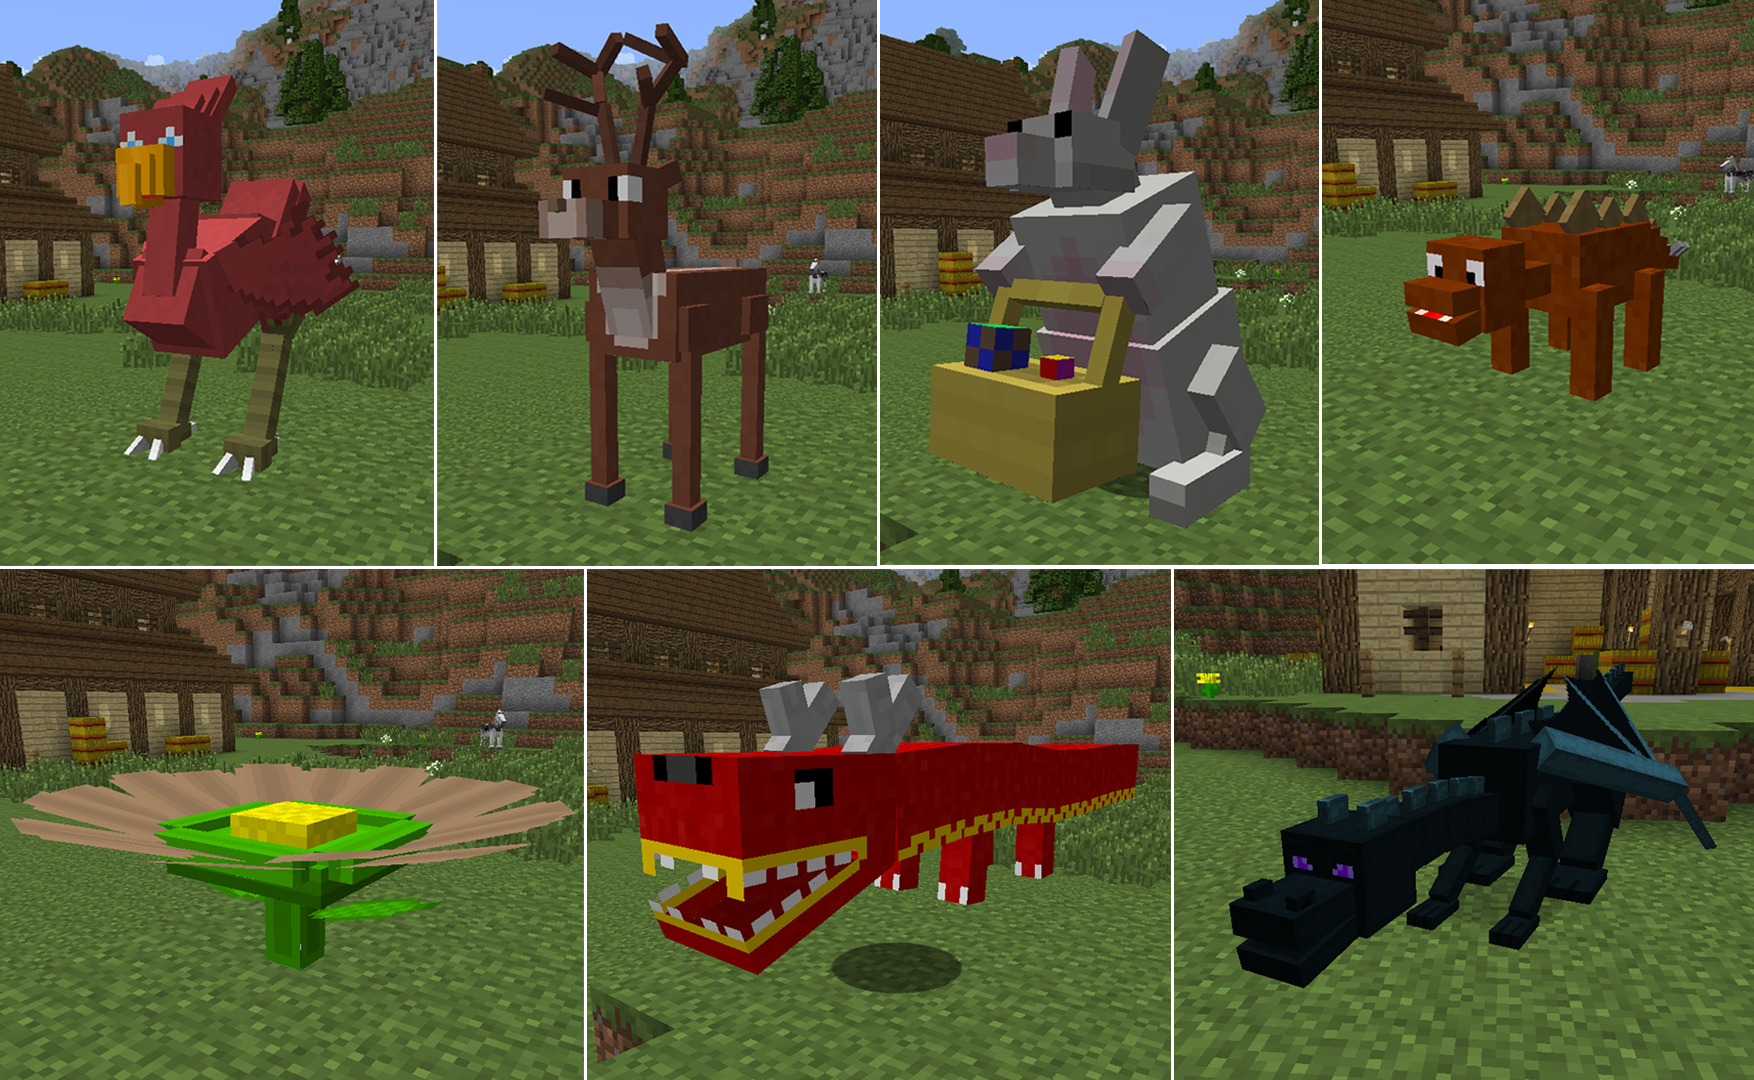 Download Minecraft Animal Bikes Mod Once you have your bike